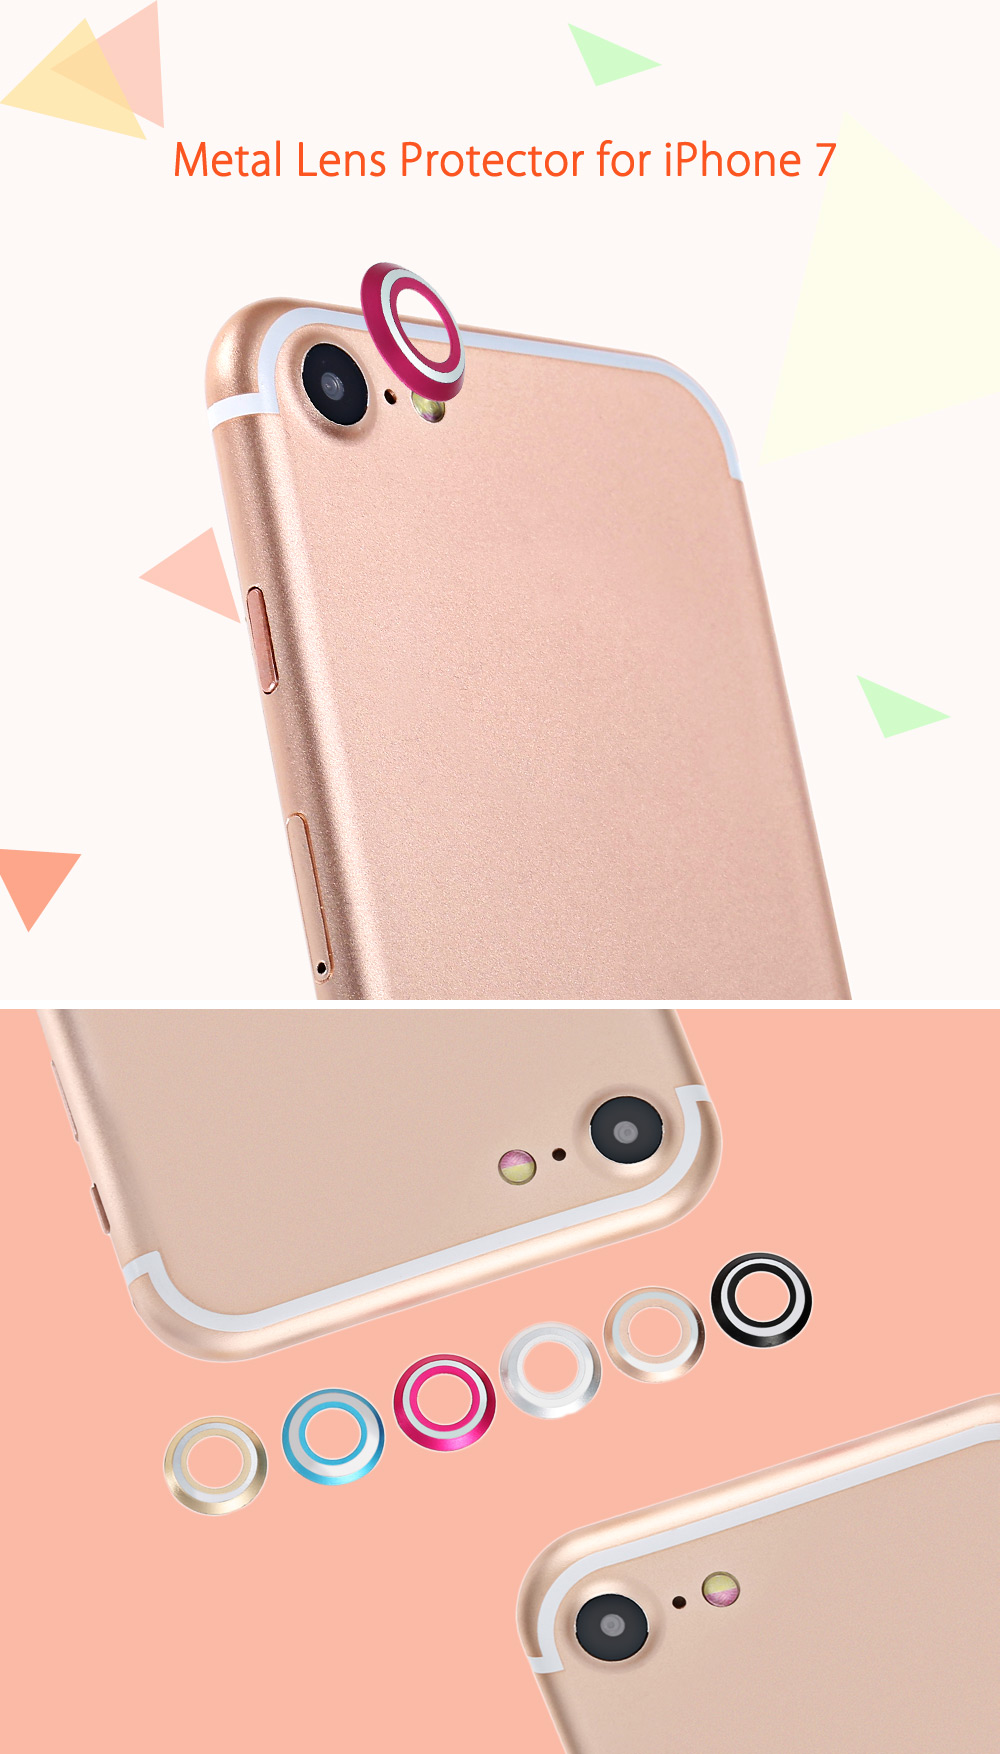 Metal Lens Protector Camera Protection for iPhone 7